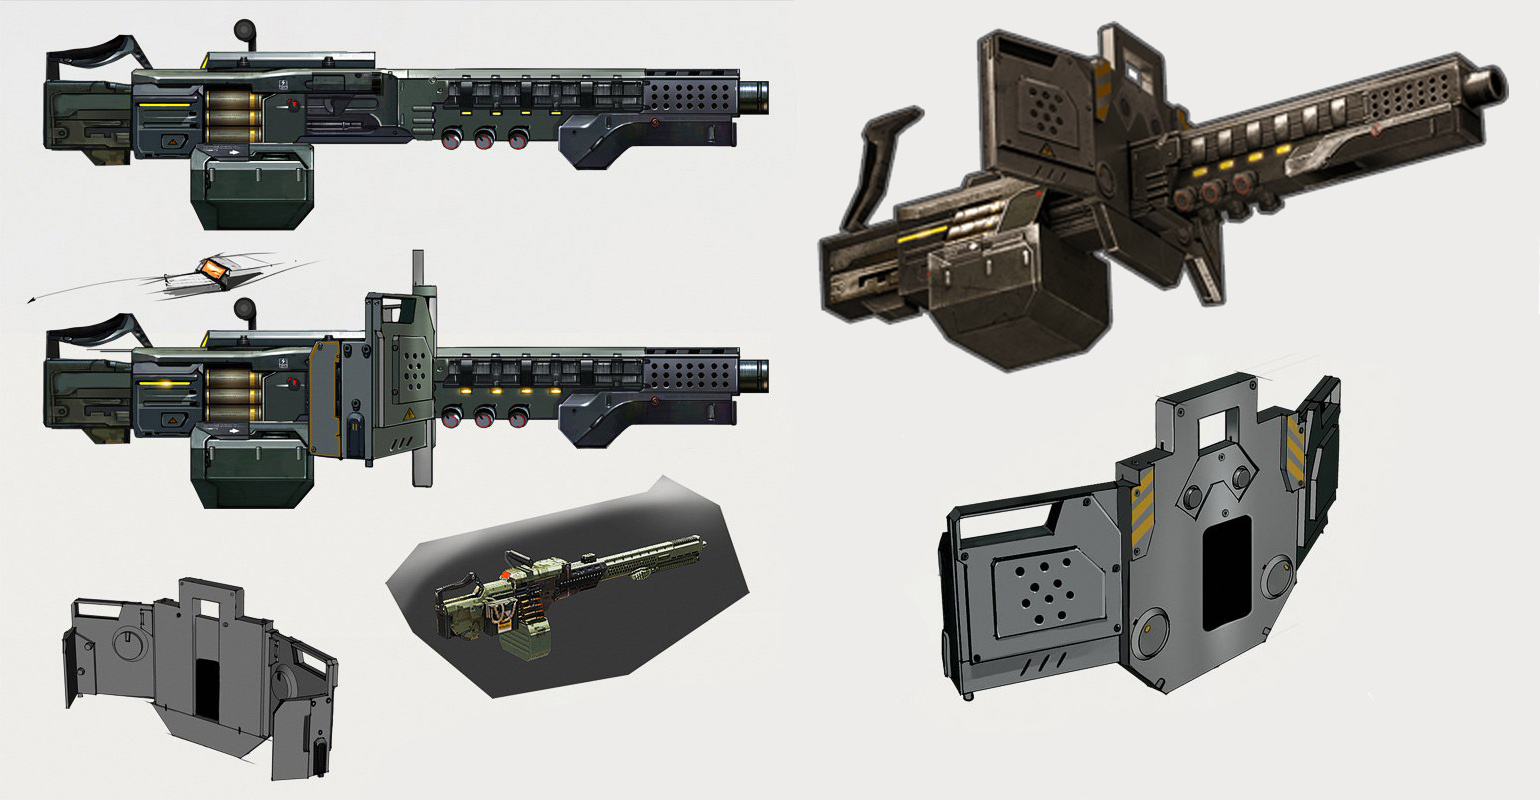 Juggernaut Machine Gun Concept Art